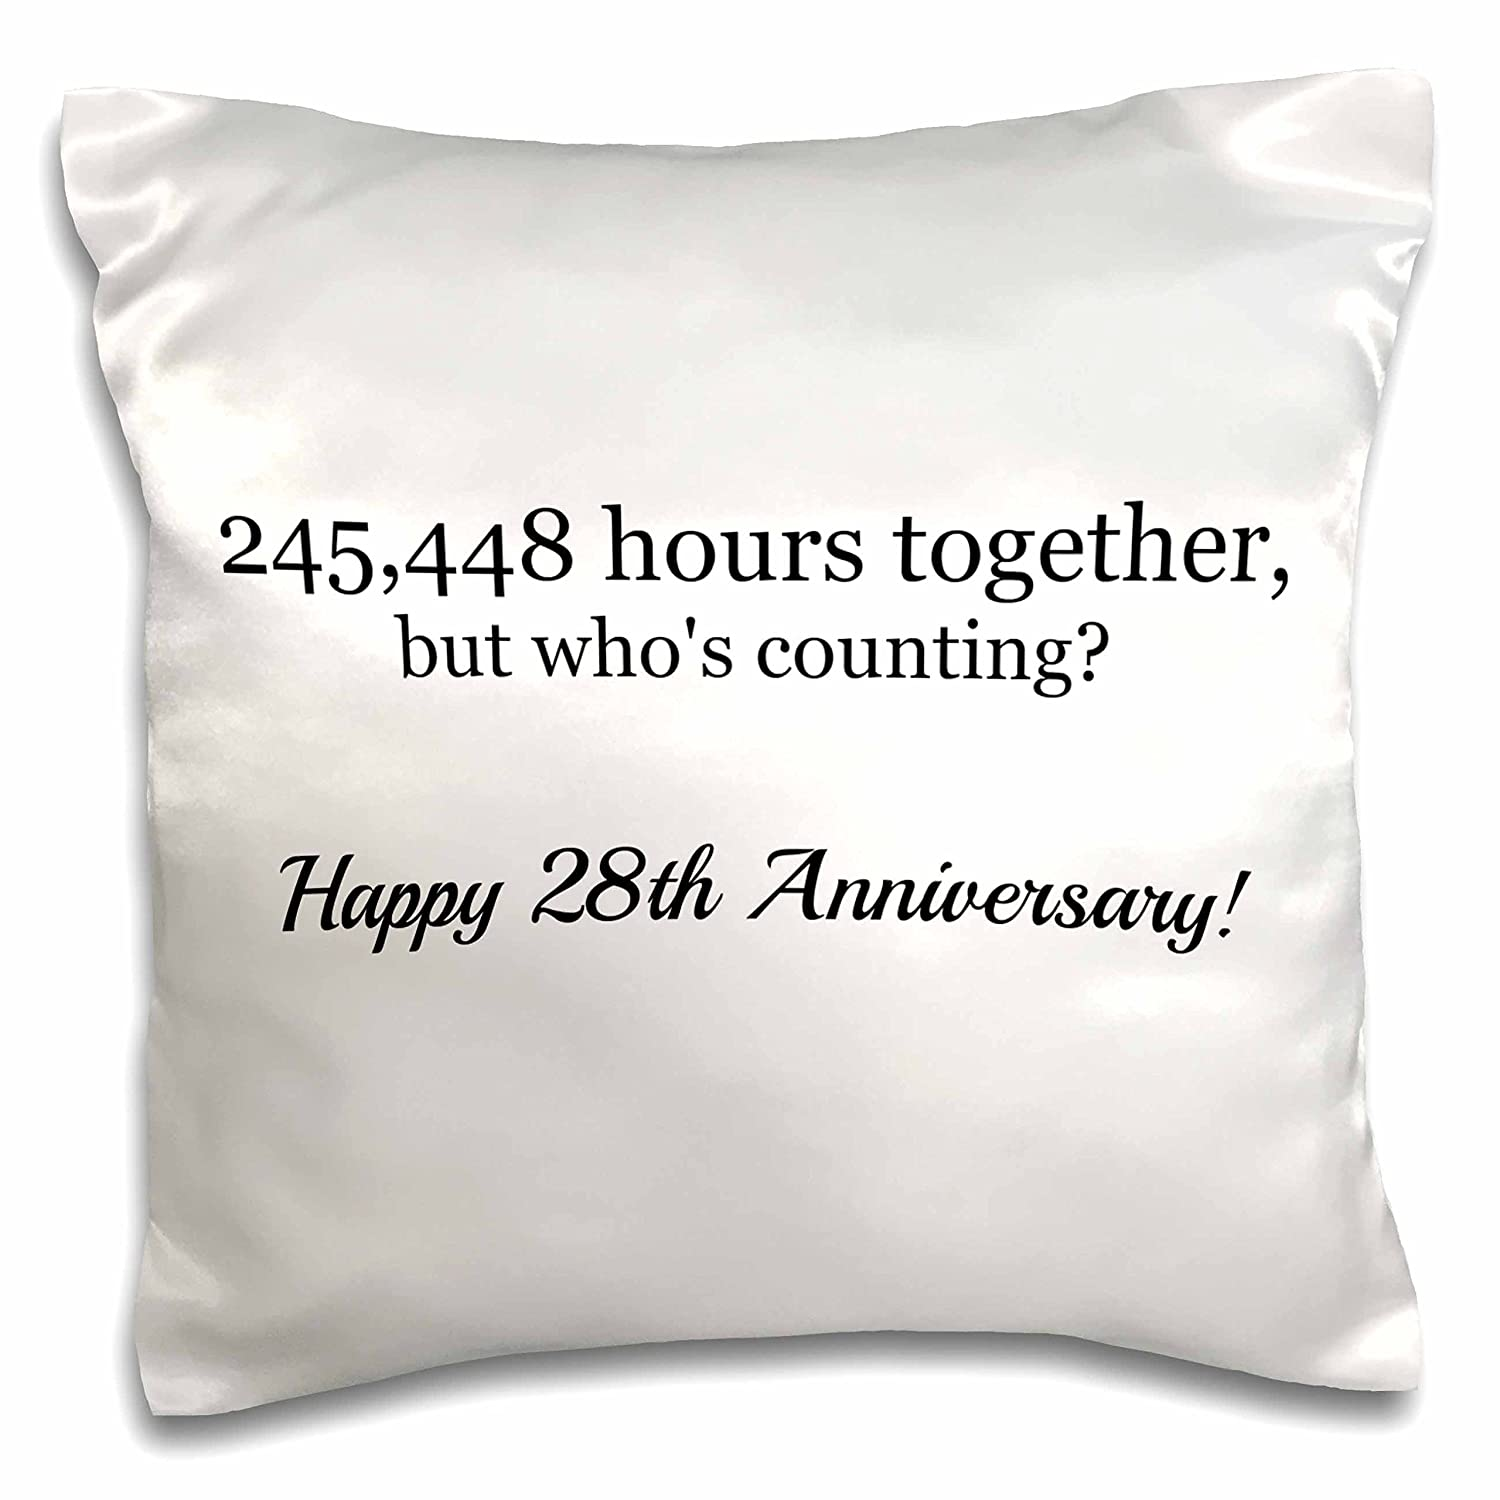 3dRose pc/_224673/_1 Happy 28th Anniversary 245448 Hours Together Pillow Case 16 x 16